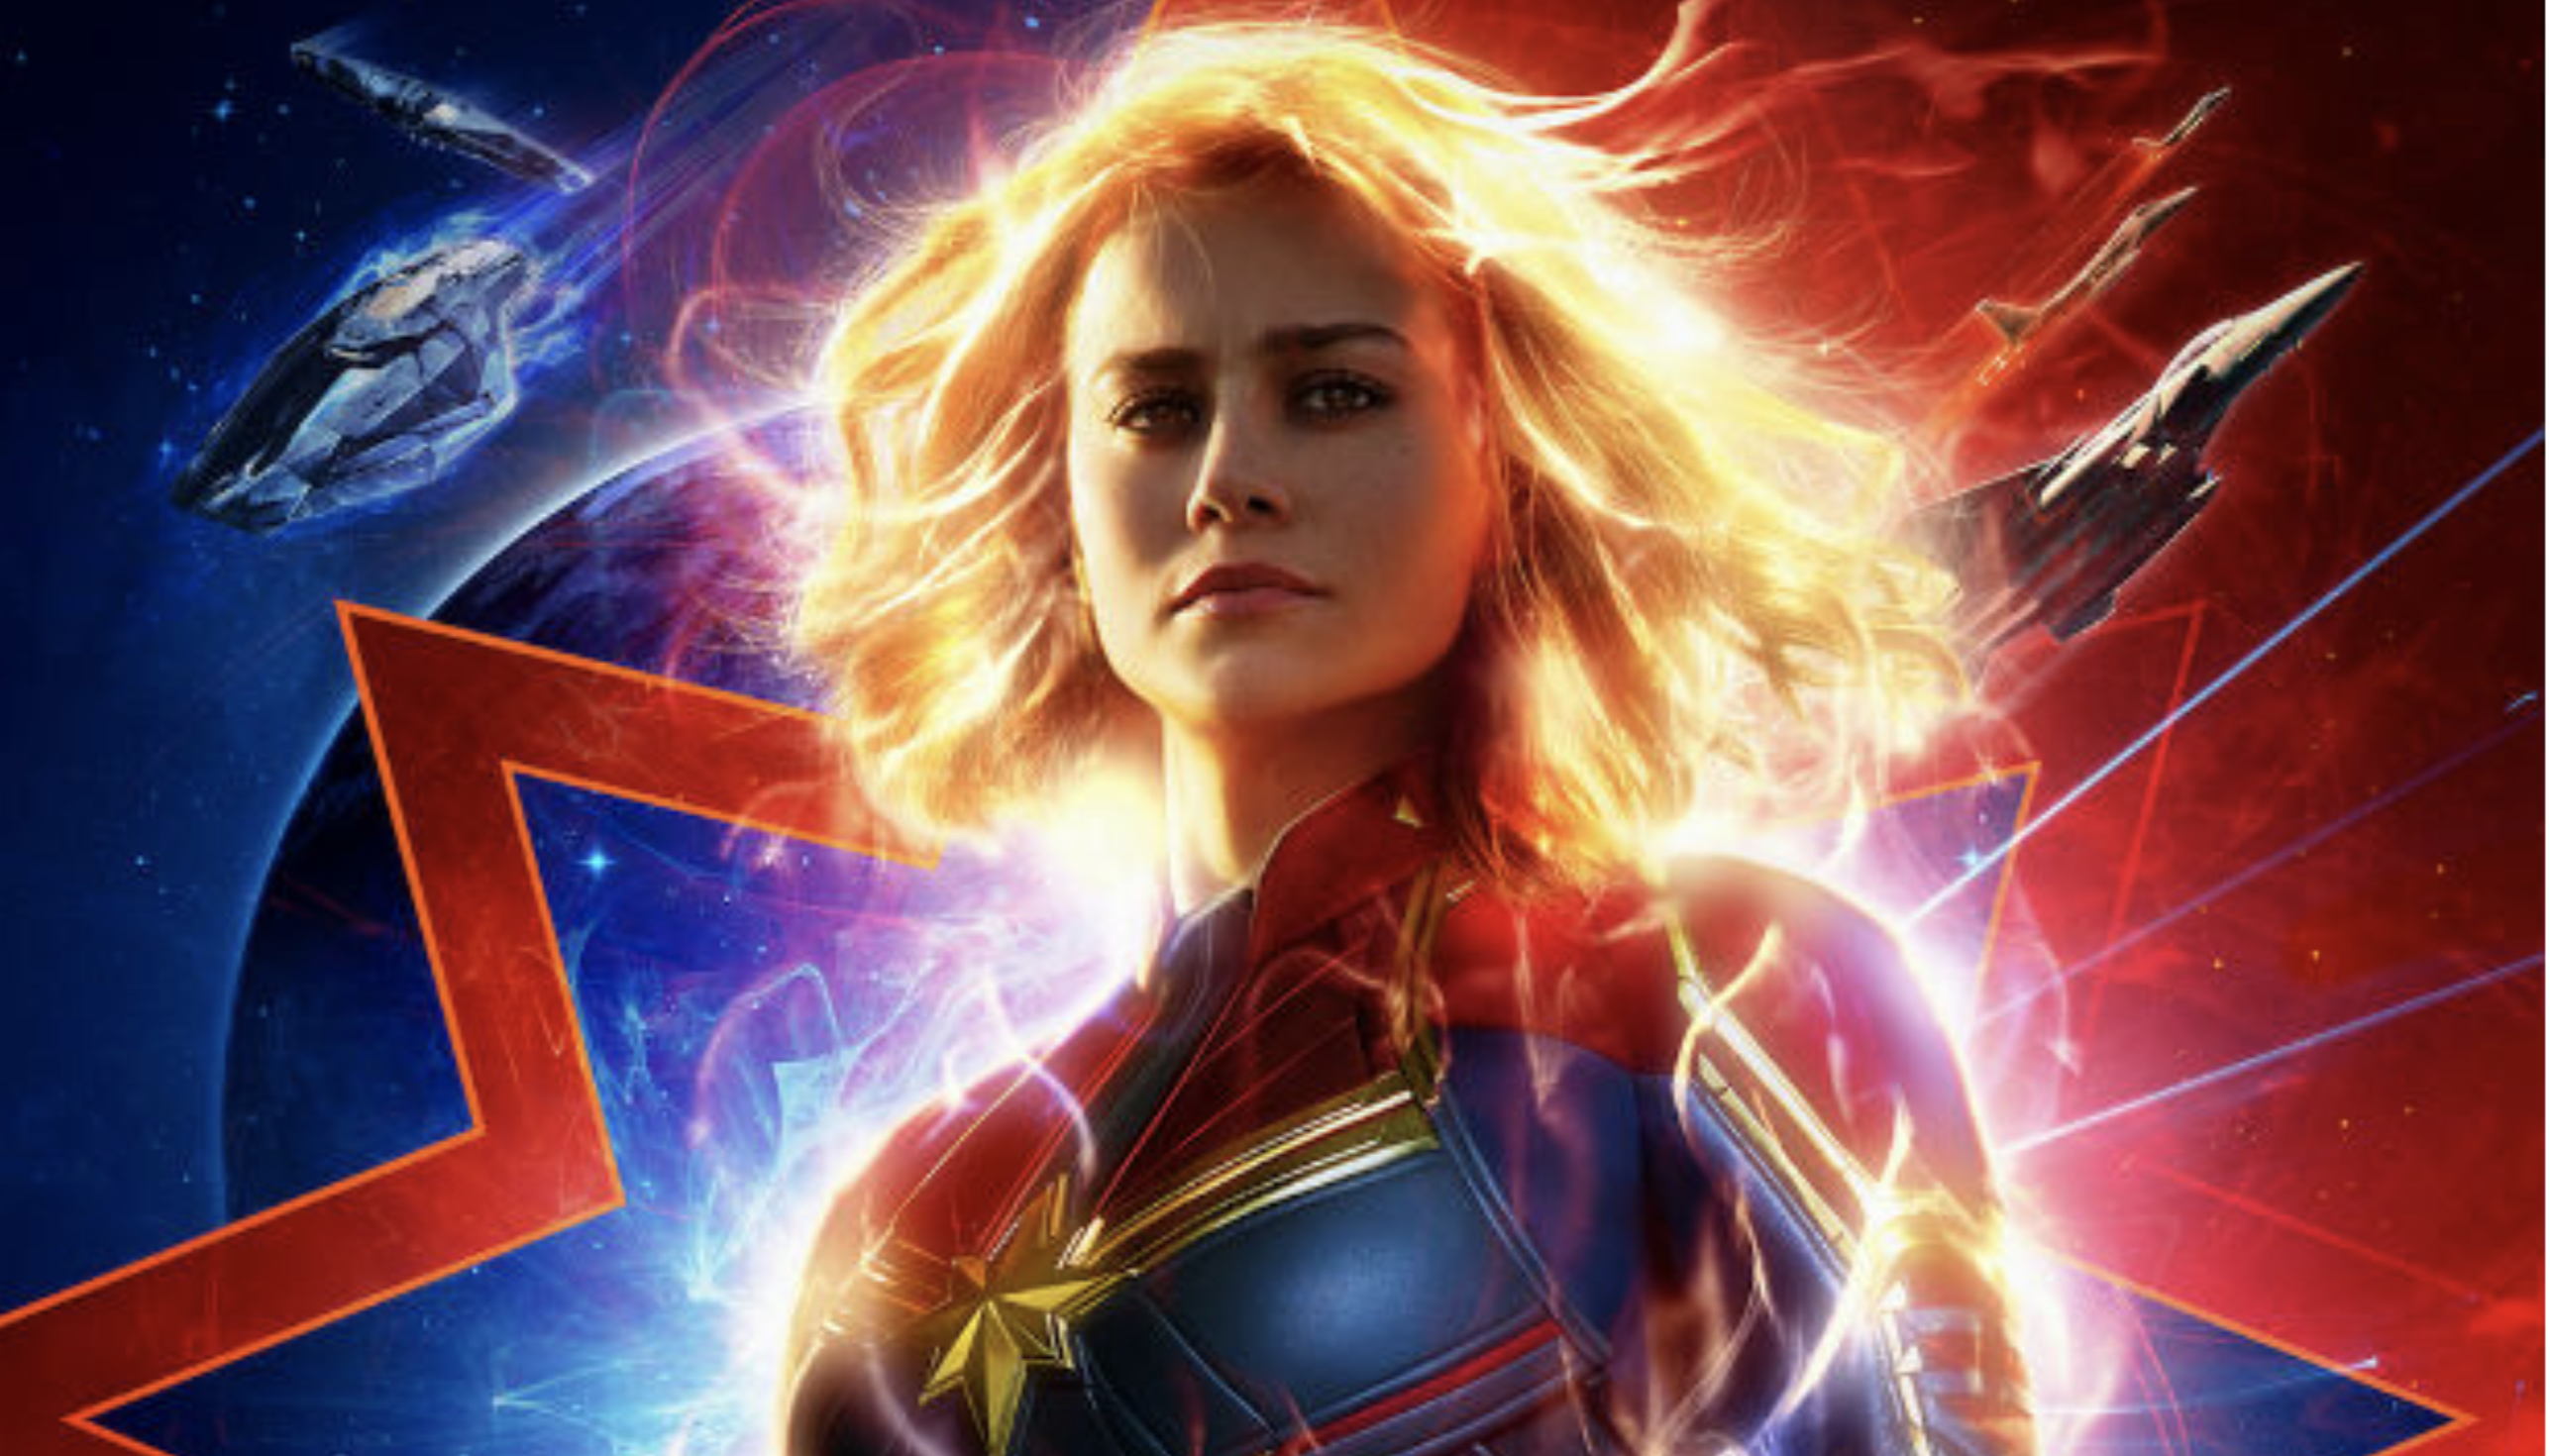 Captain Marvel becomes the latest Marvel film to bring in $1